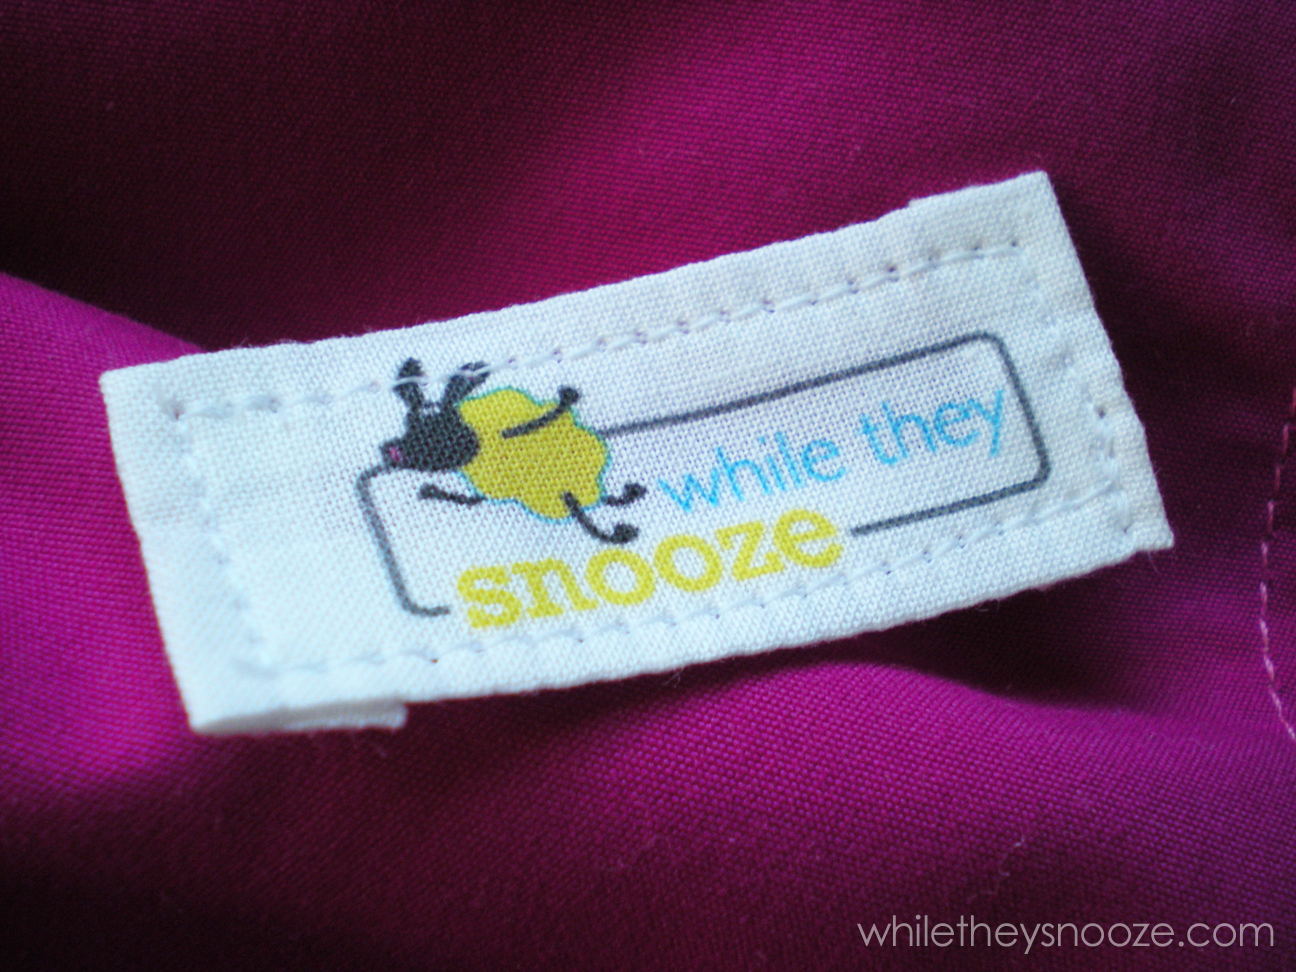 Clothing Tags: While They Snooze: Make Your Own Labels Cheap